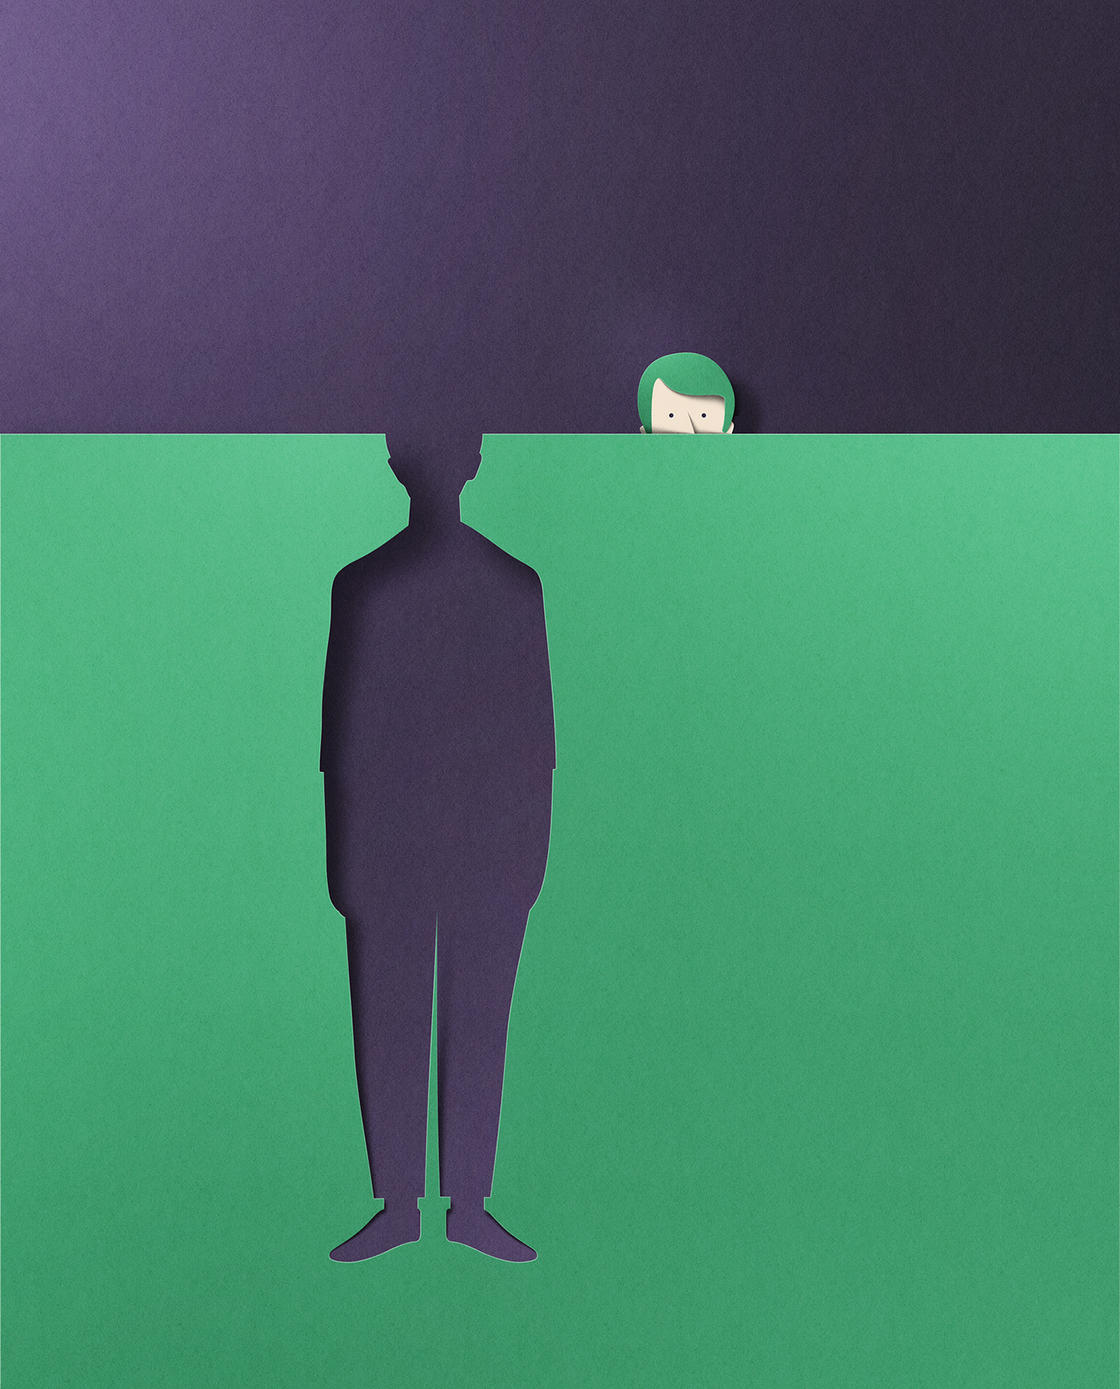 Paper Illustrations – The powerful and poetic creations of Eiko Ojala